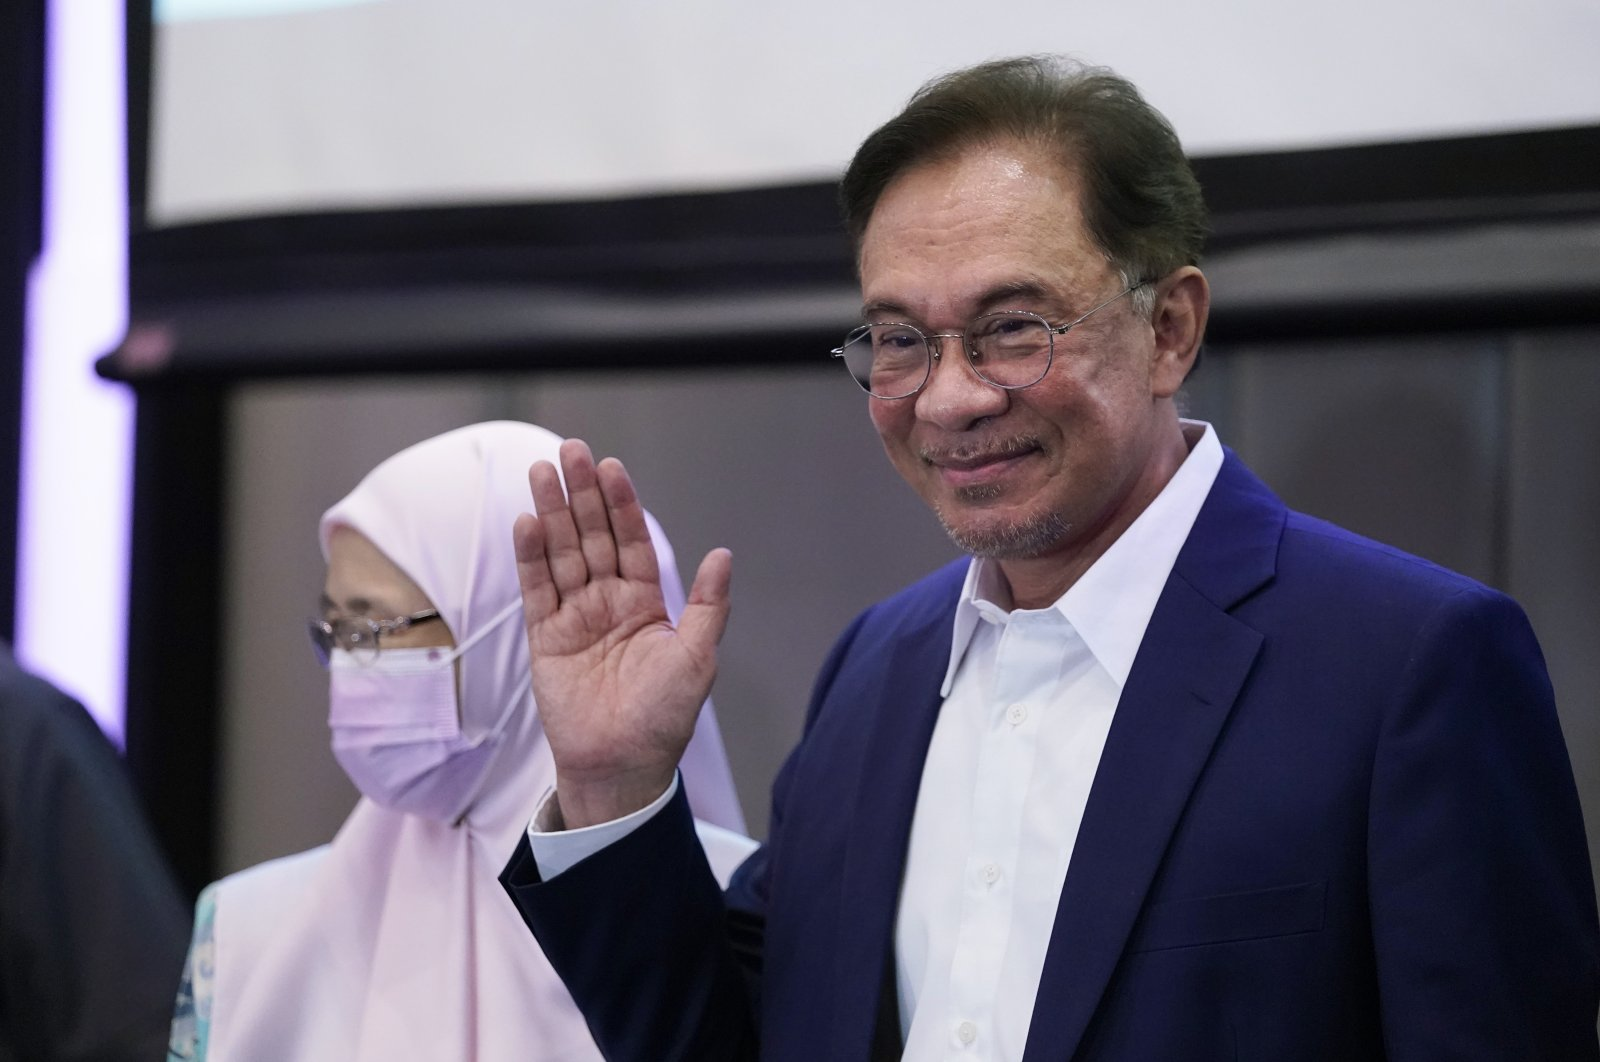 Malaysia's opposition leader Anwar Ibrahim waves after a press conference in Kuala Lumpur, Sept. 23, 2020. (AP Photo)